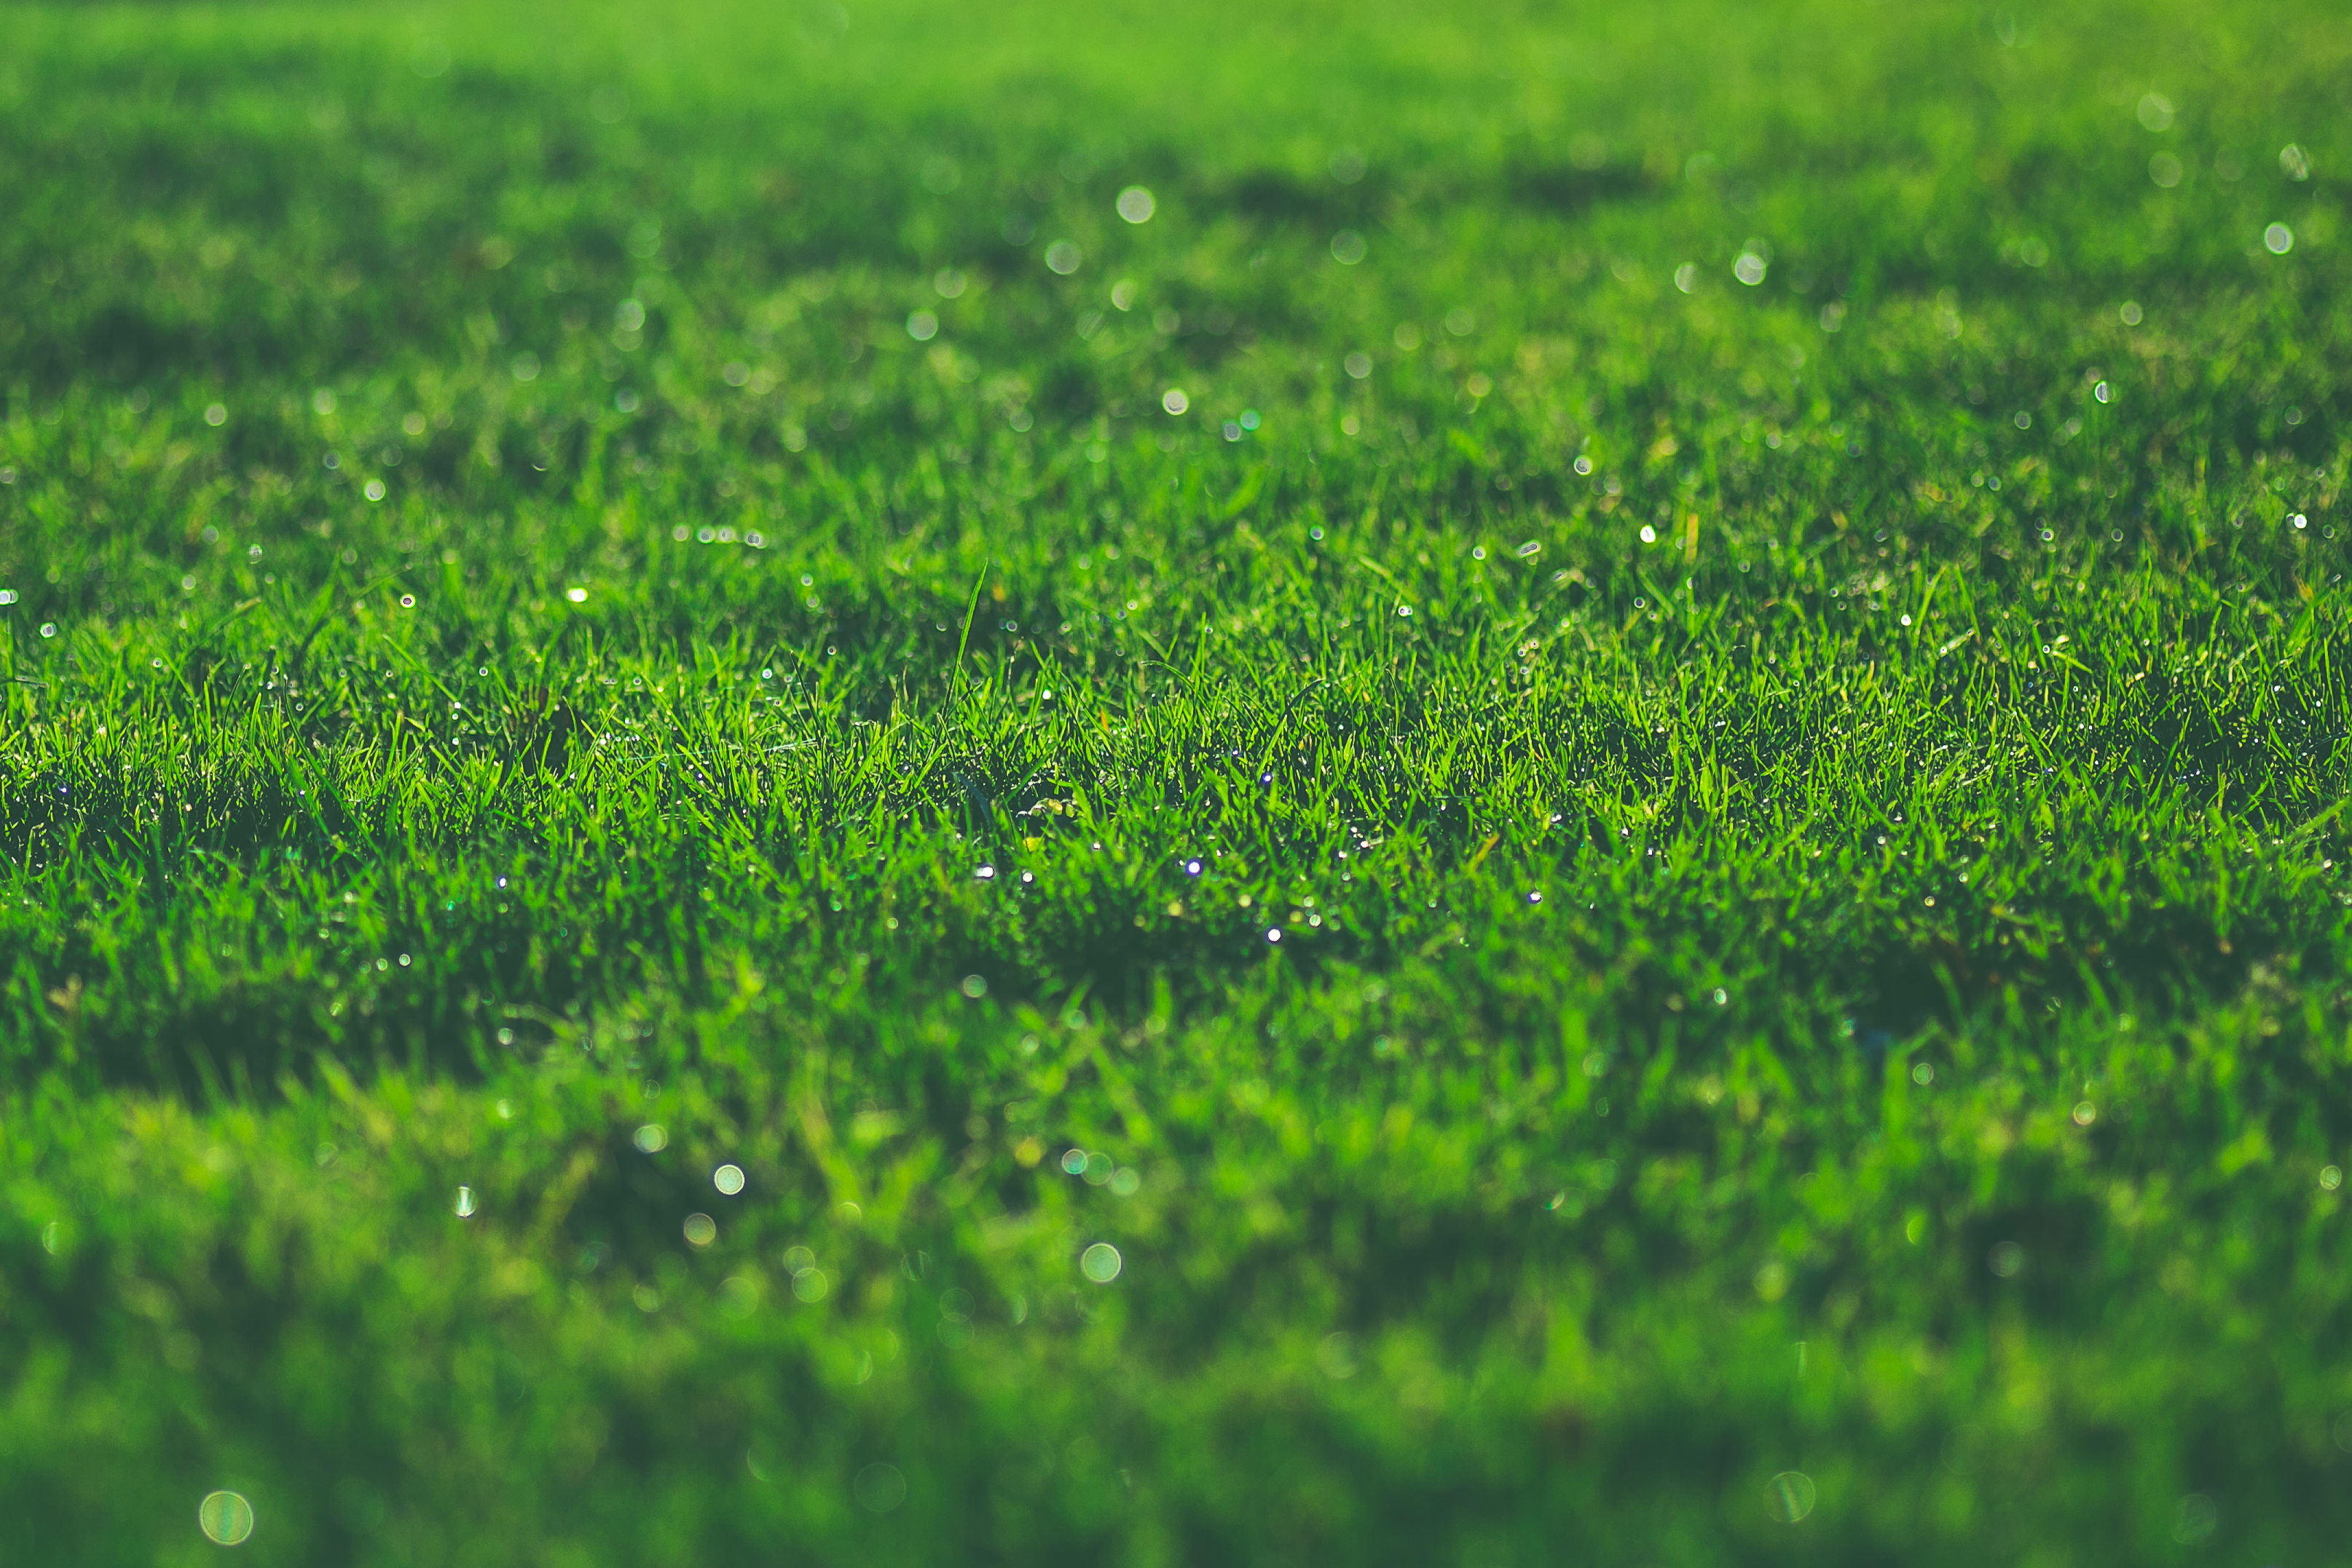 Salt and Water Mixture to Kill Weeds in Grass and Flowers